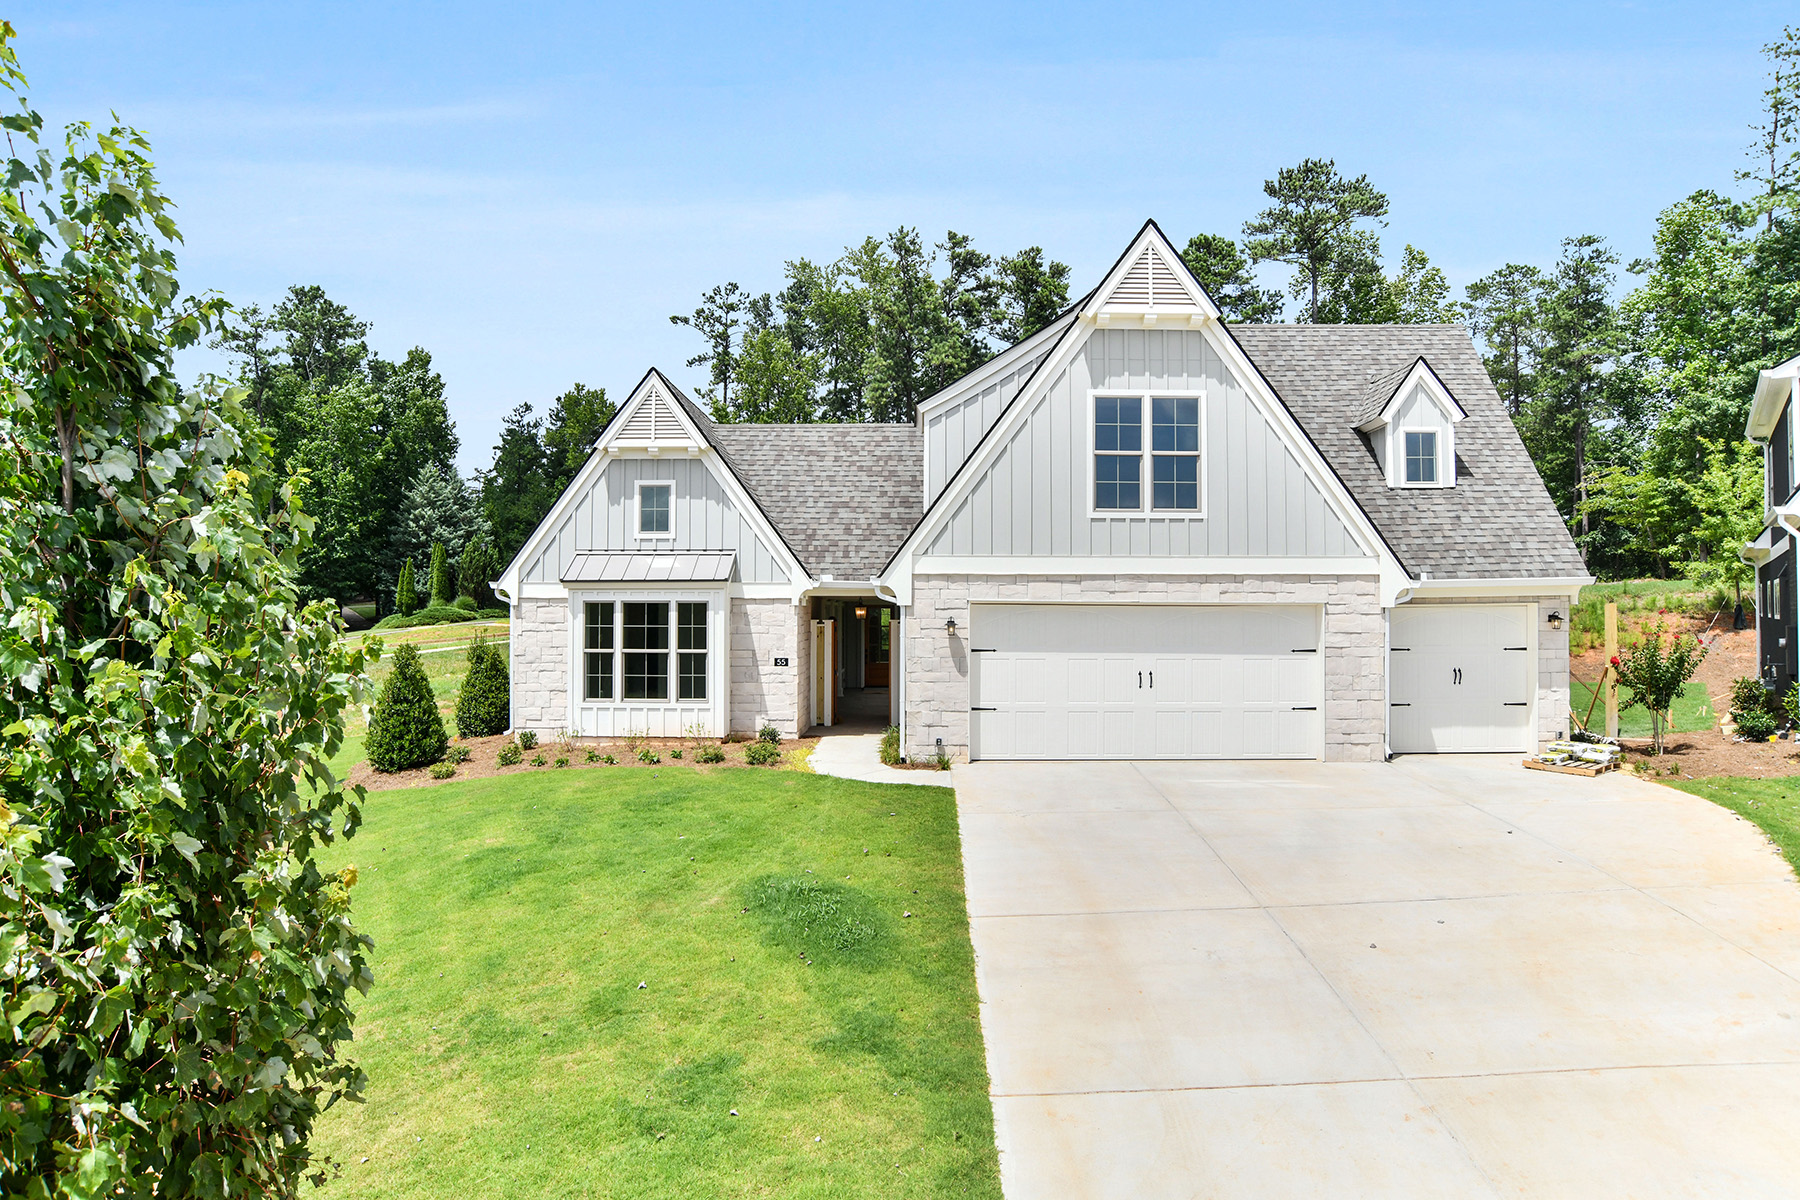 Single Family Homes for Active at New Construction Ranch With A Courtyard And Two Car Garage In 55 Plus Community 55 Arbor Garden Circle Newnan, Georgia 30265 United States